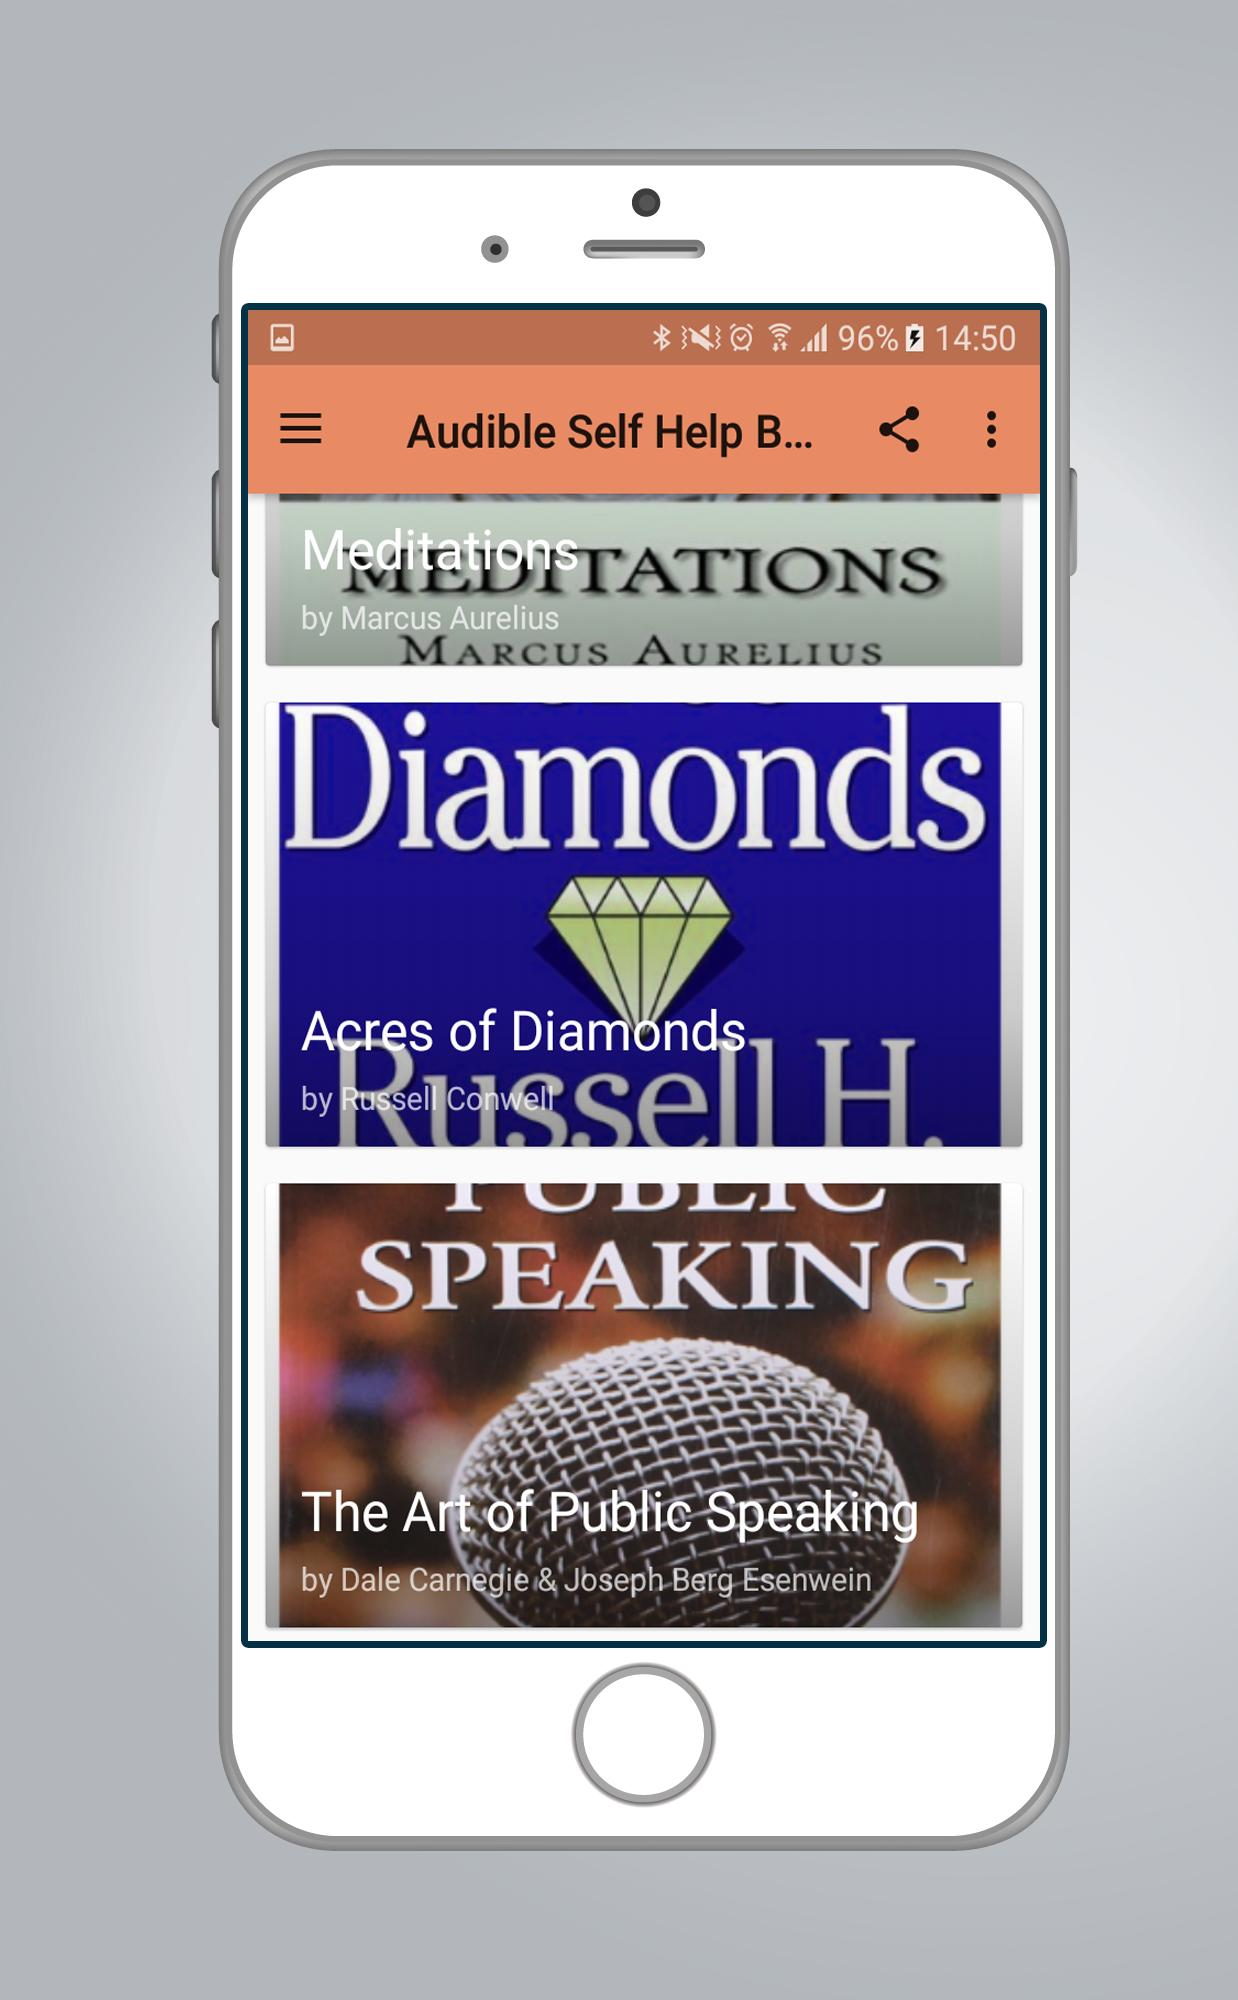 Audible Self Help Books for Android - APK Download